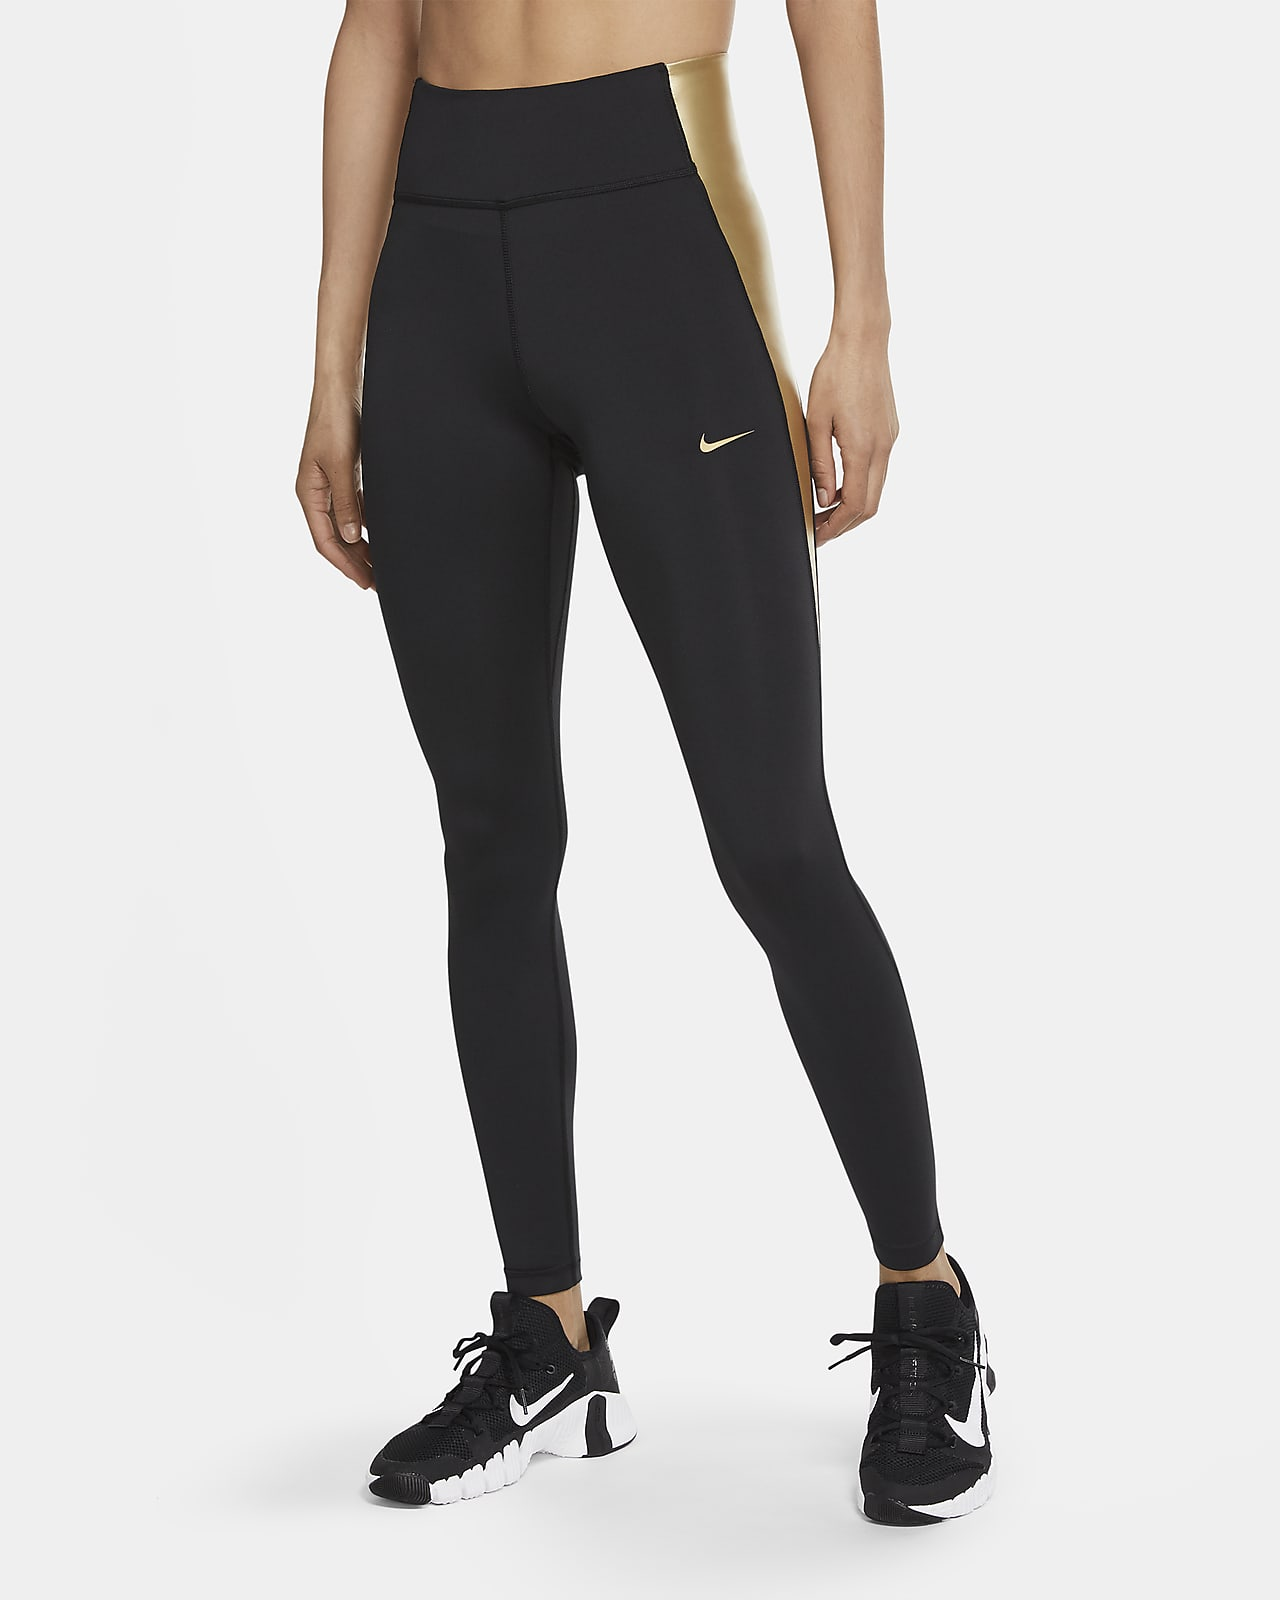 Nike One Women's Leggings